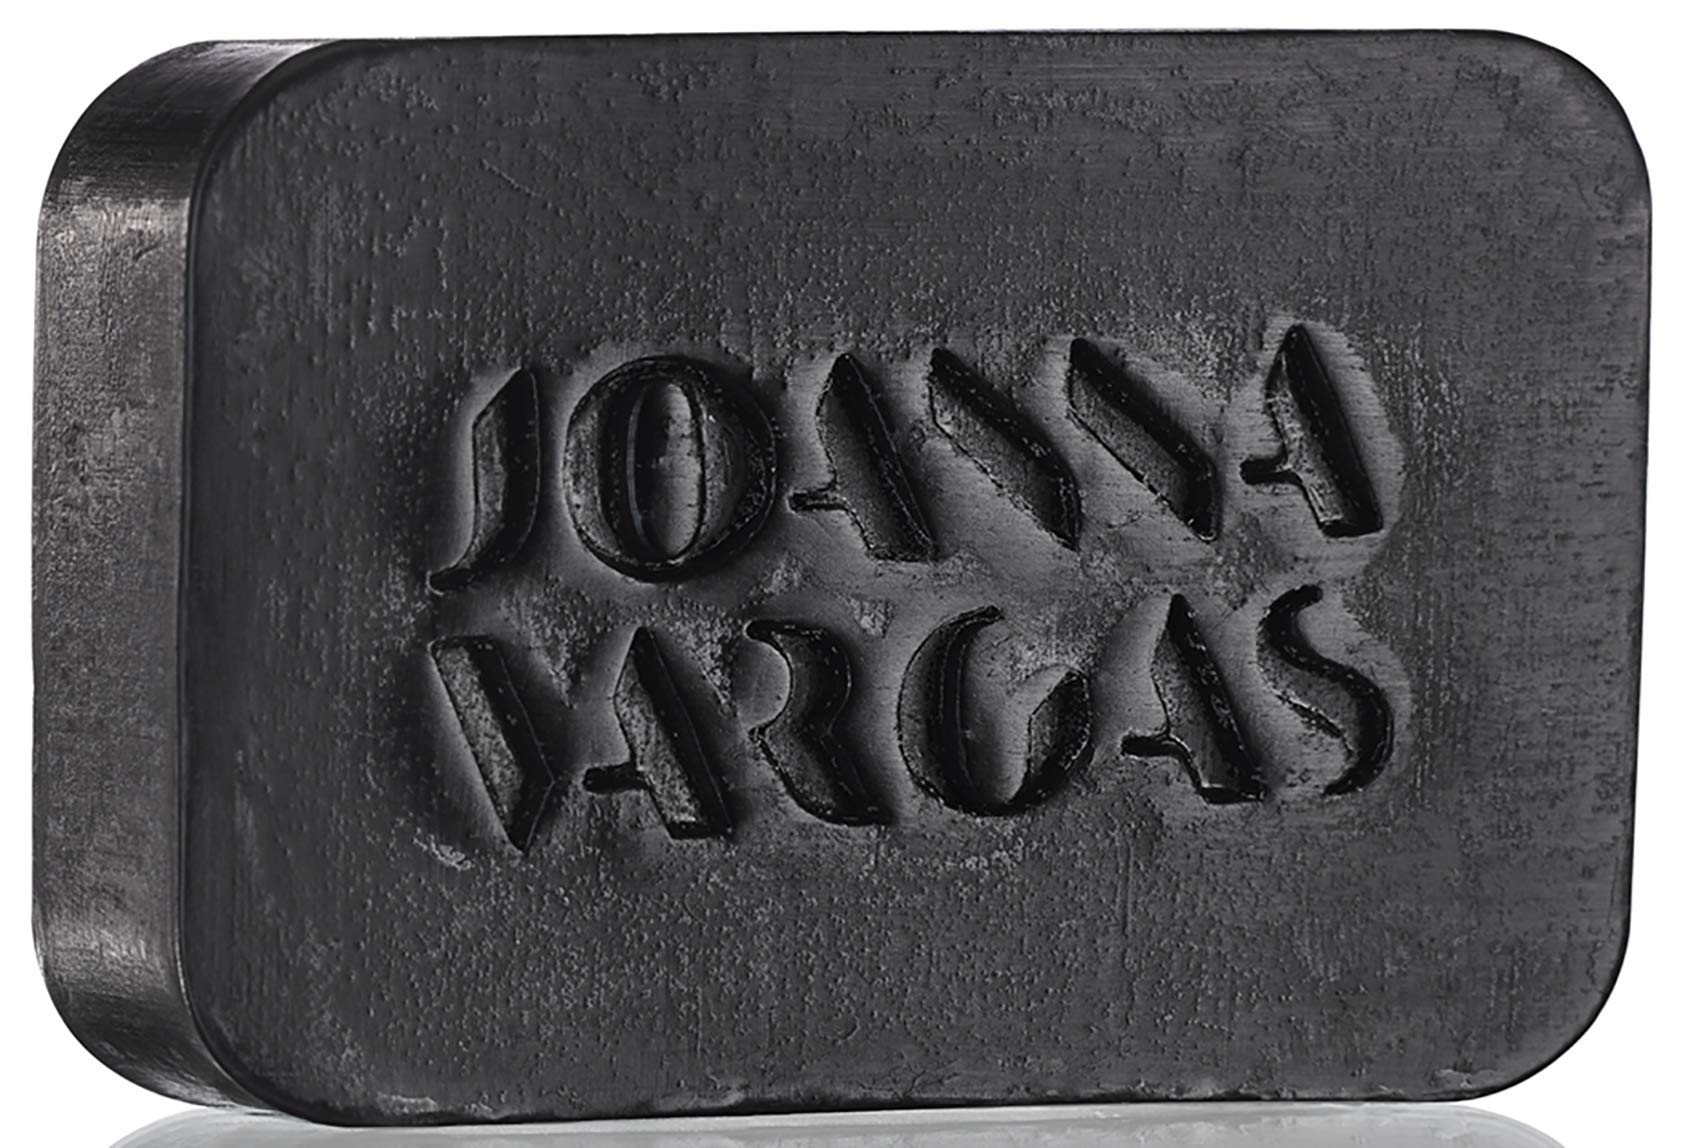 Bamboo Charcoal Soap From Celebrity Facialist Joanna Vargas -This Complexion Soap Can Be Used As An Acne Face Wash and Natural Body Soap- Natural Face Soap that Draws Out Impurities by Joanna Vargas Skin Care